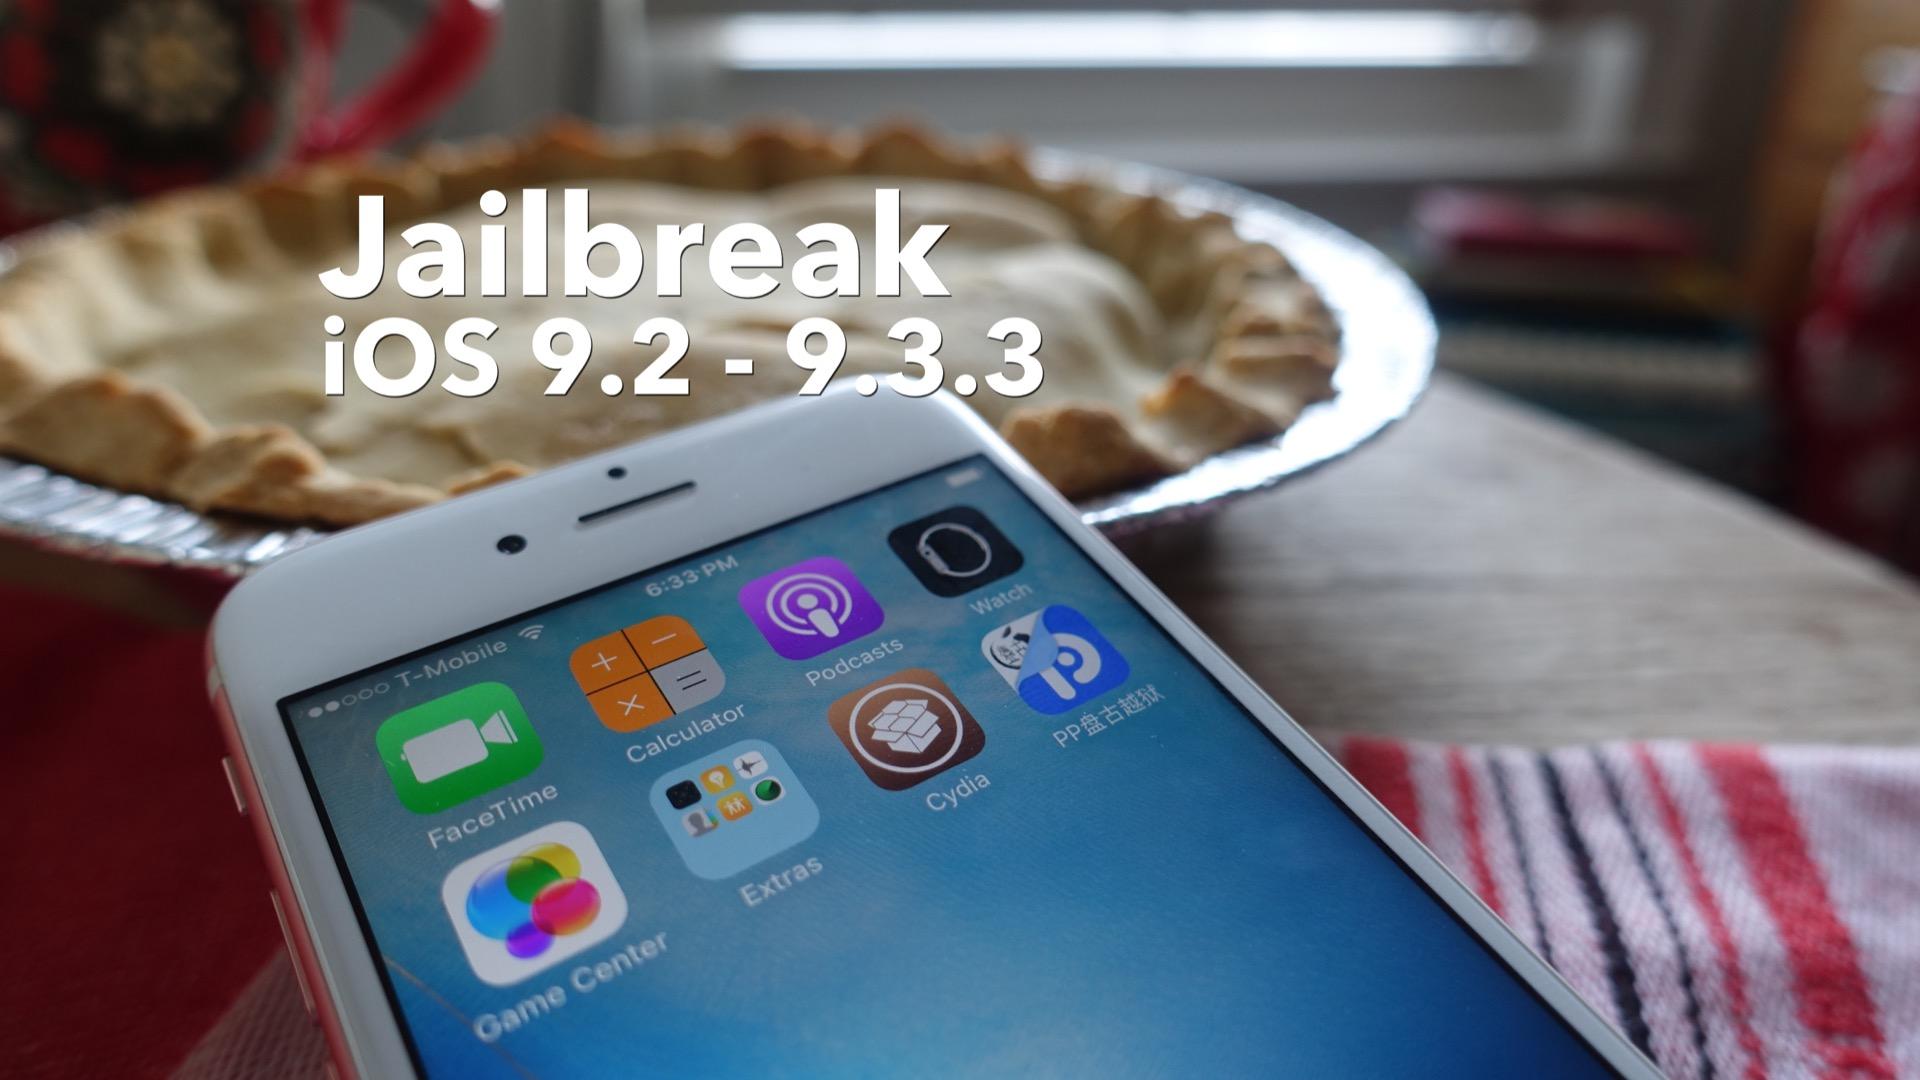 How-To: jailbreak iOS 9.2 - 9.3.3 with the Chinese Pangu tool [Video